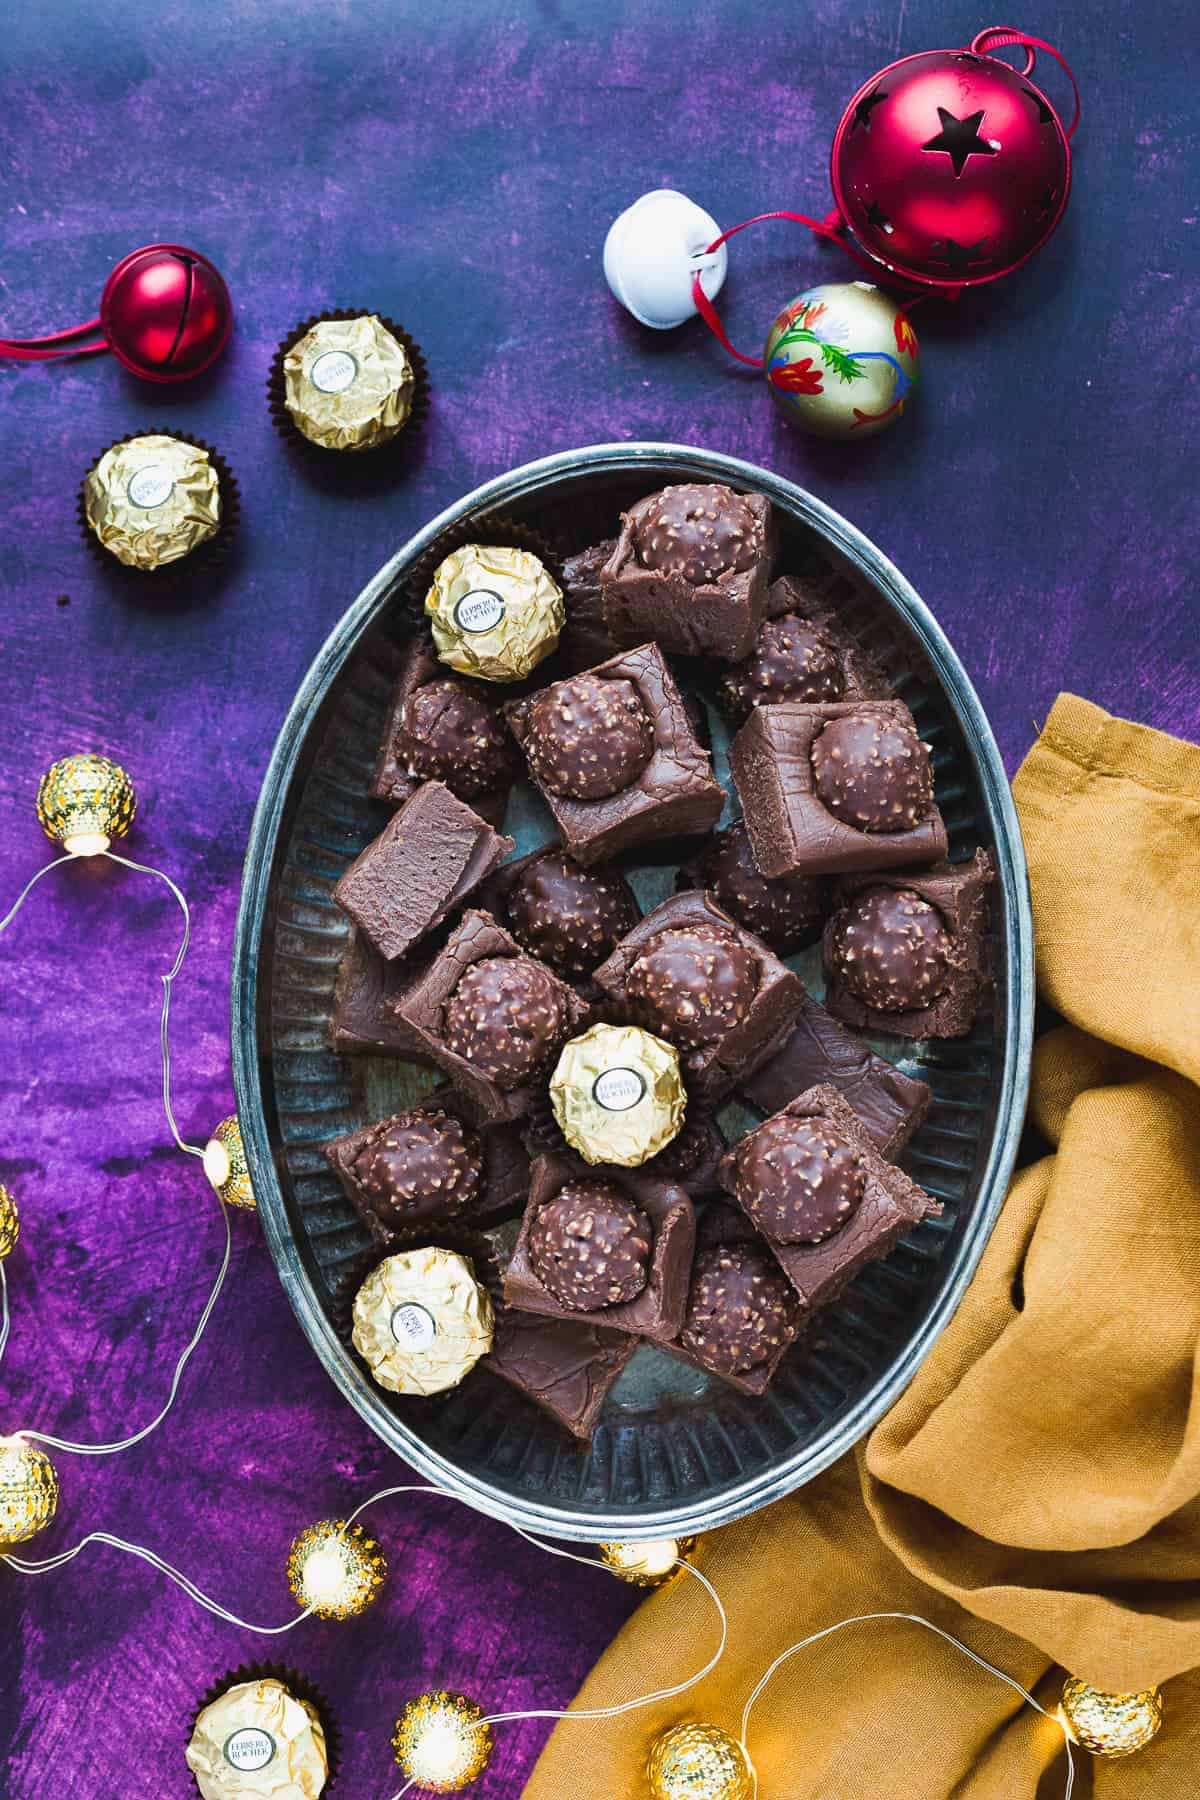 Chocolate fudge on a platter. There is a dark purple background and the platter is surrounded with Christmas decorations.